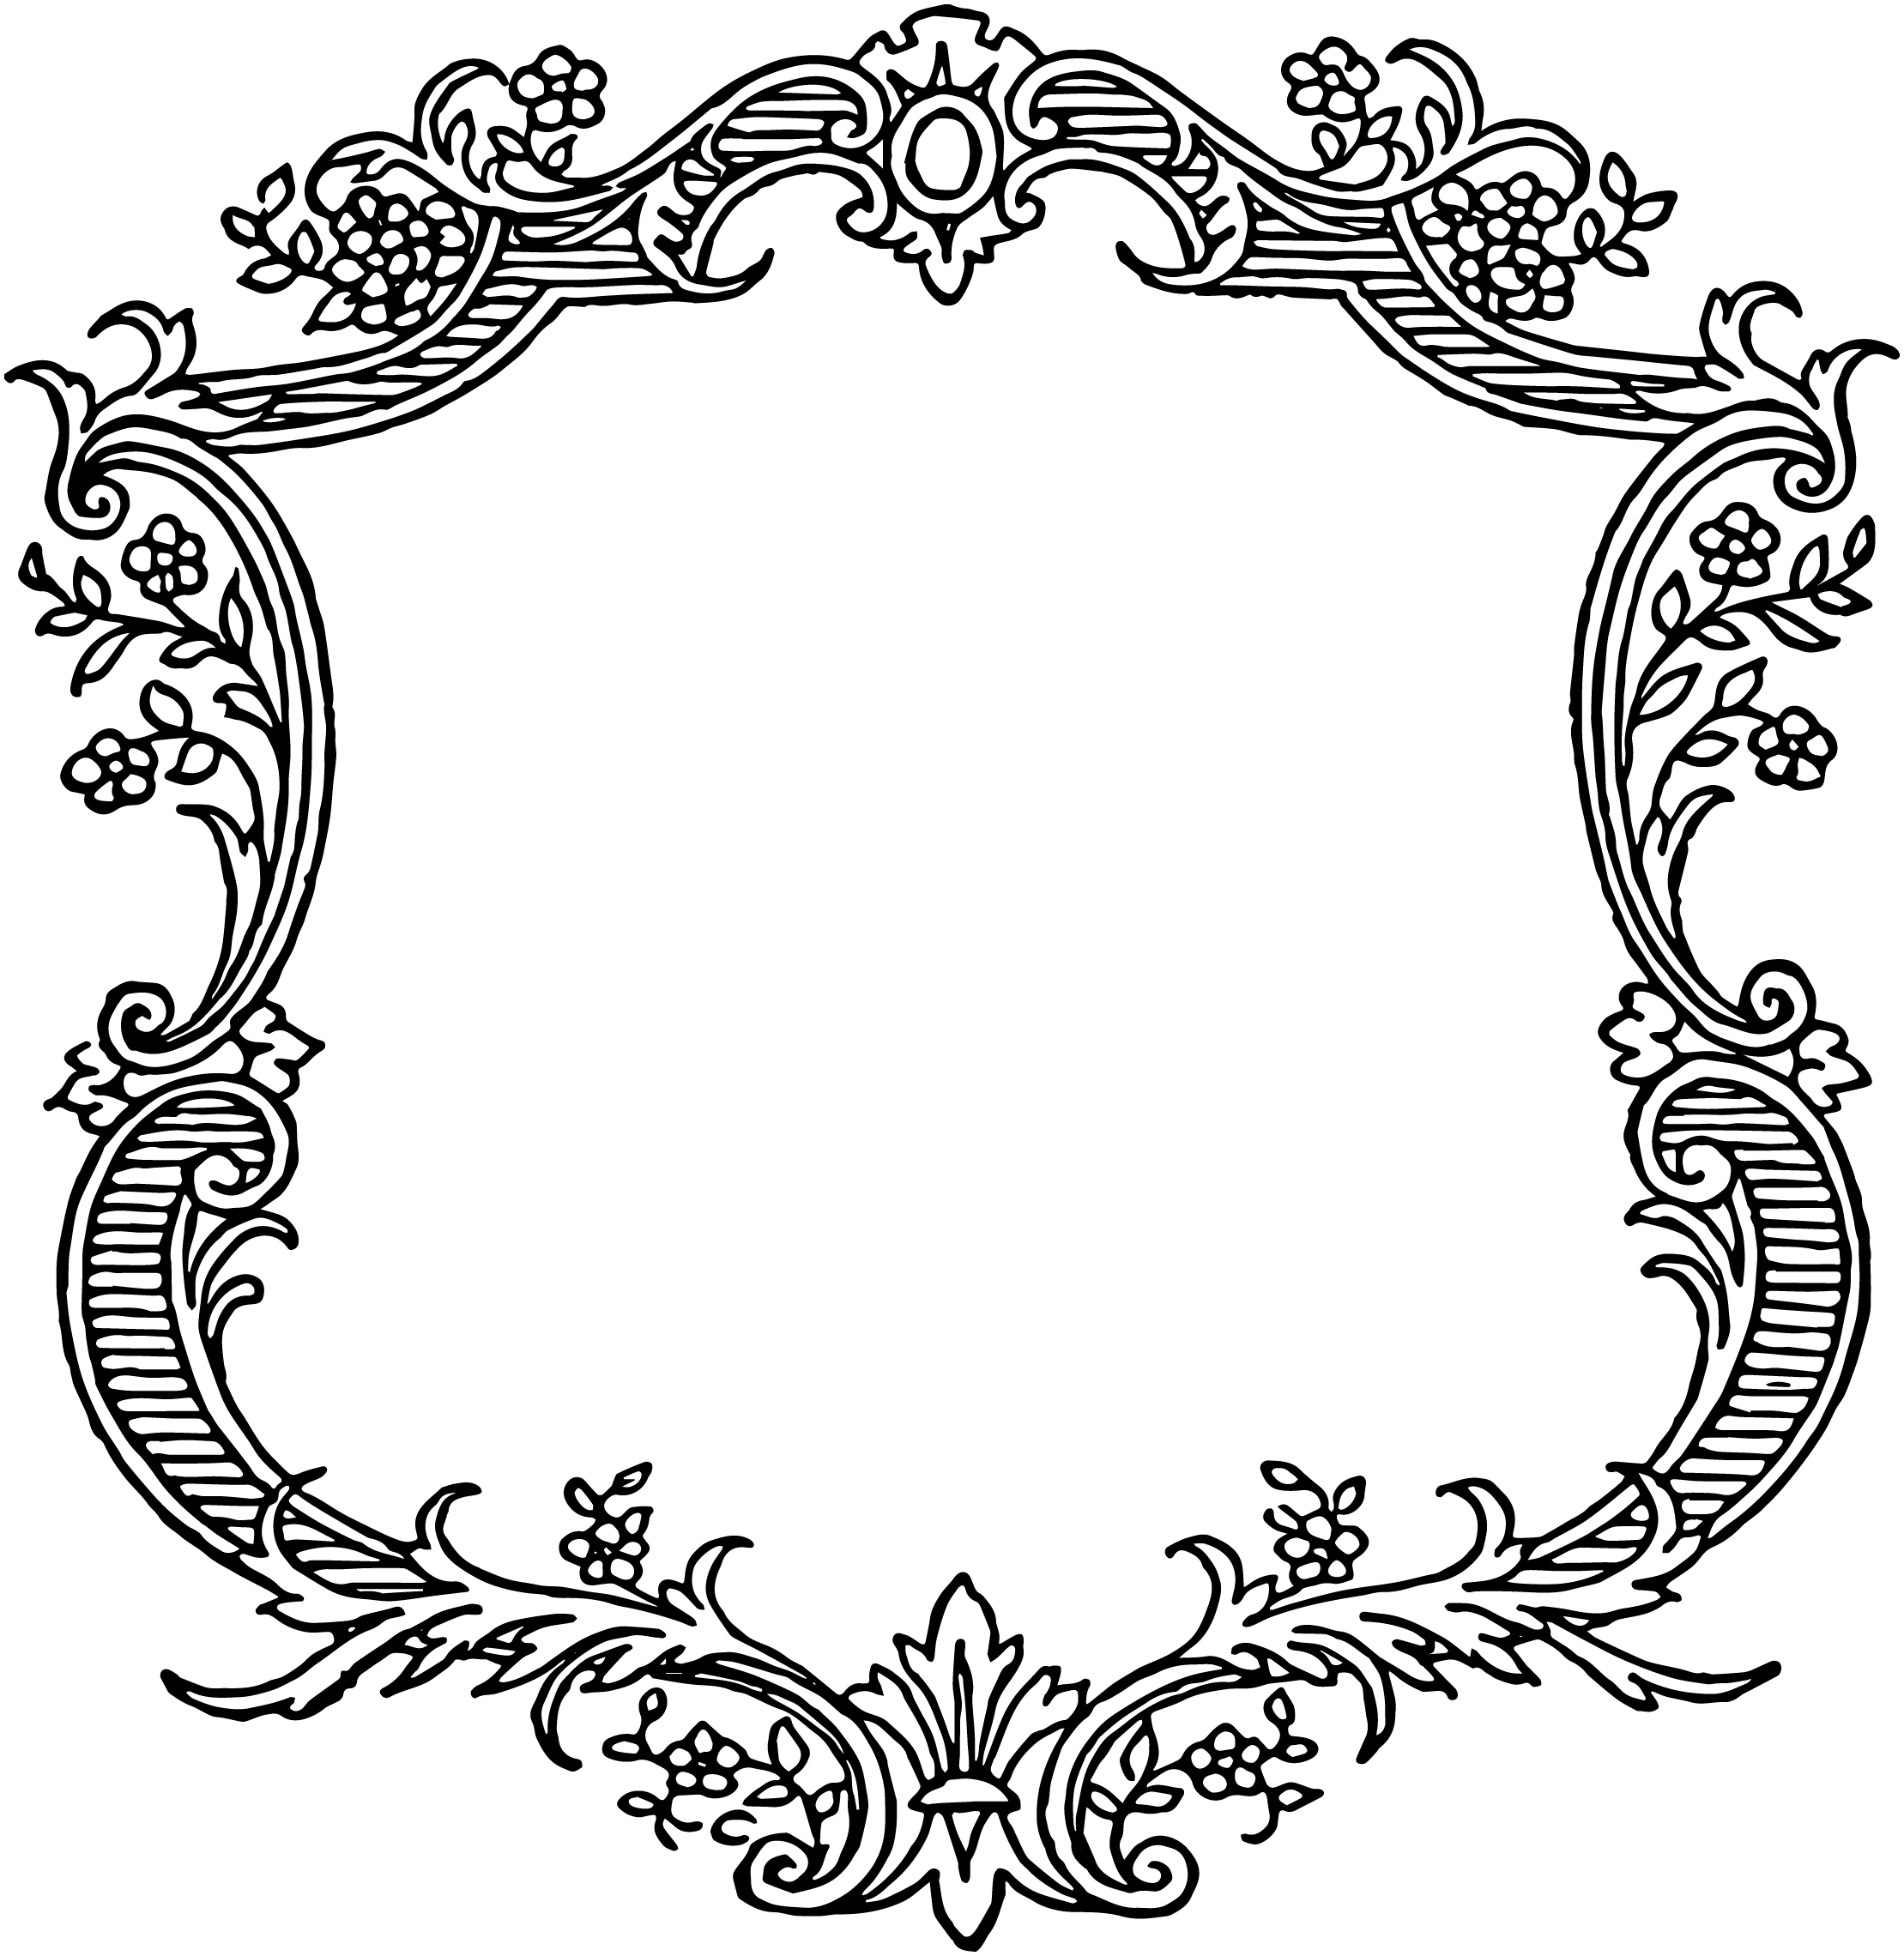 Flower scroll clipart picture library Ornament Vector Png Free vintage floral scroll | Выпиливание ... picture library